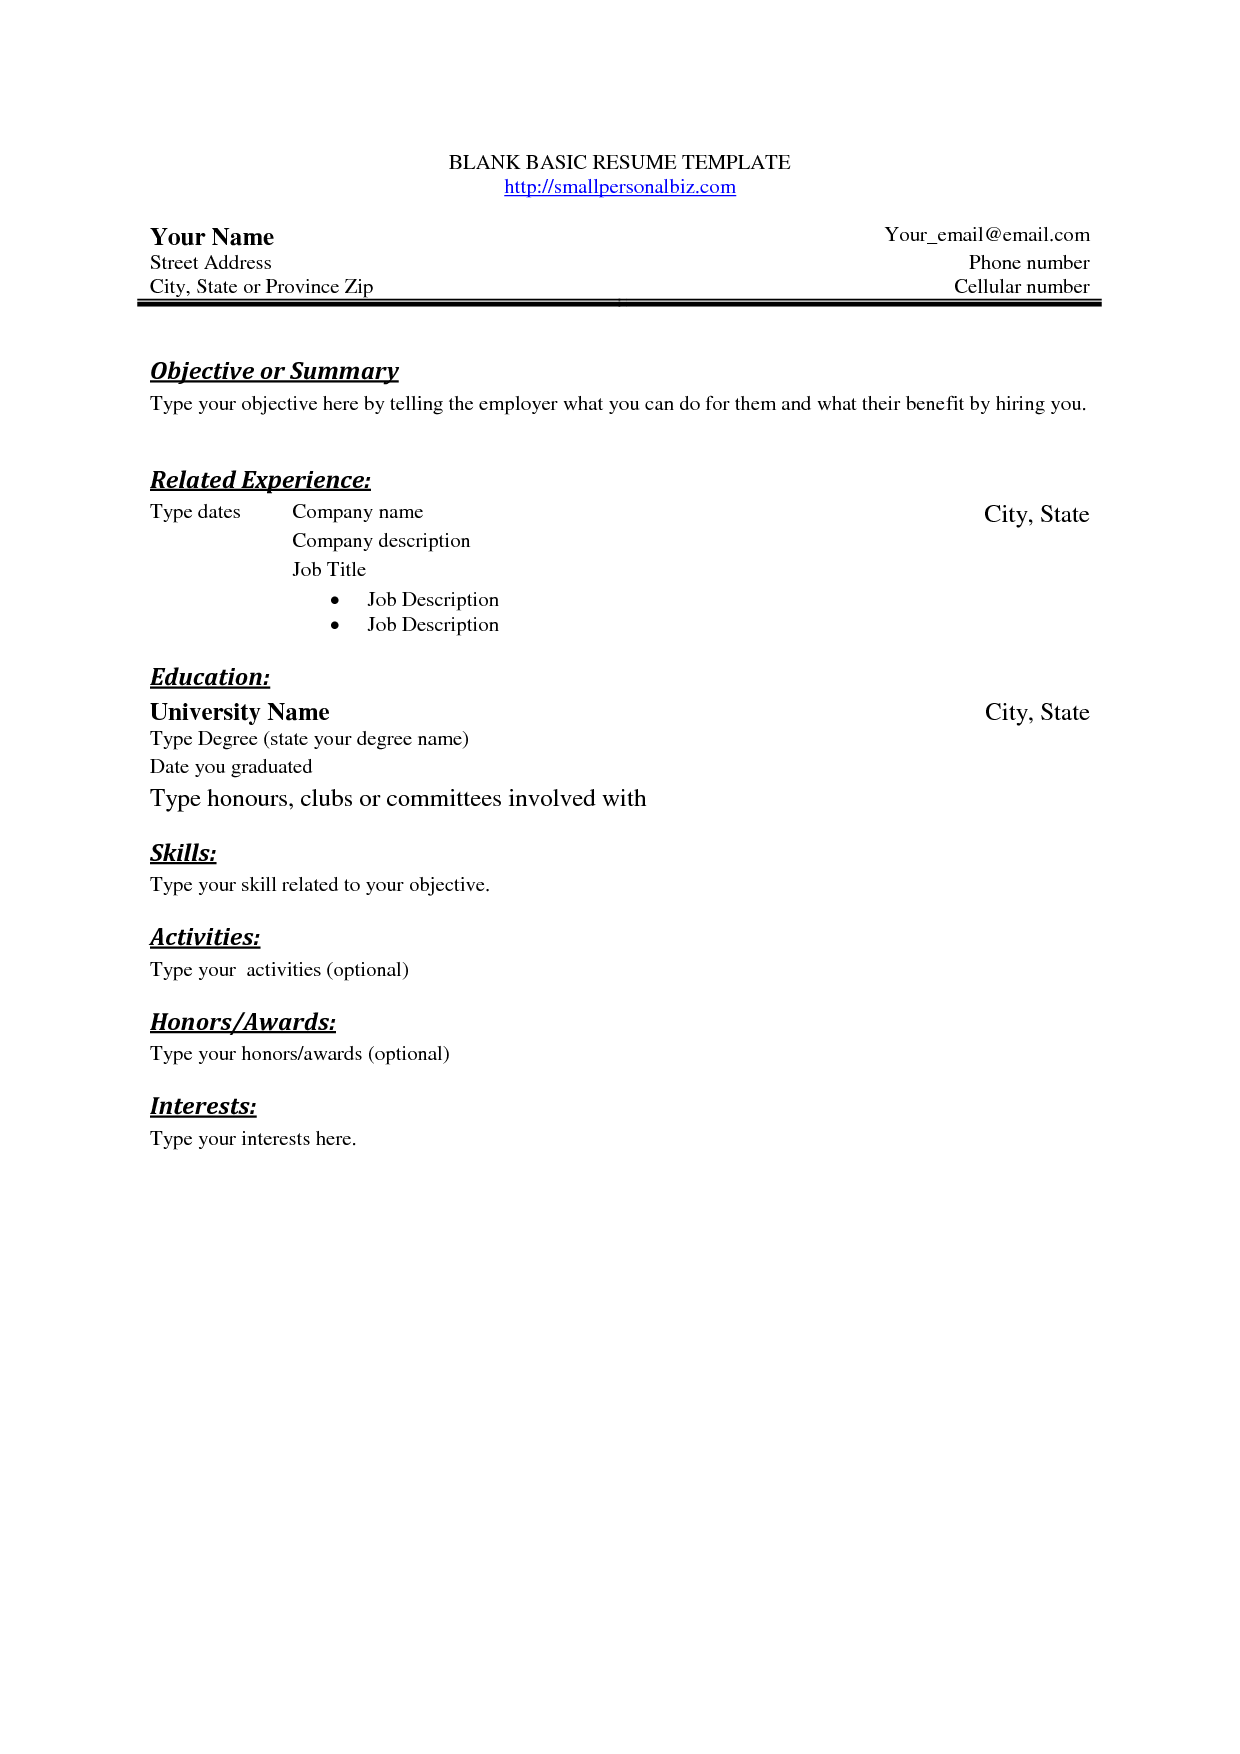 Stylist And Luxury Simple Resume Layout 10 Free Basic Blank